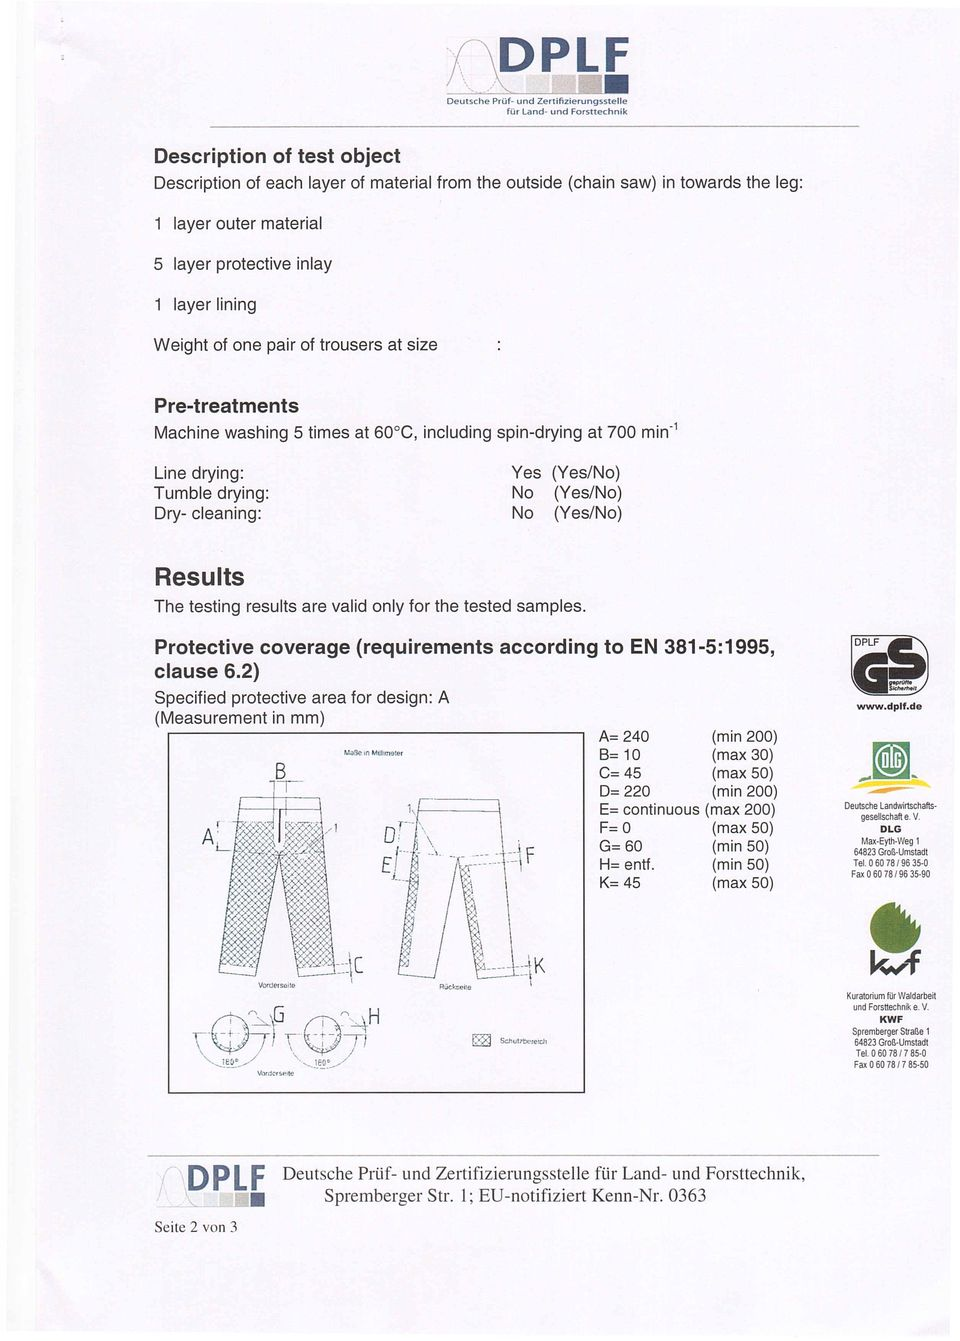 Dry cleaning: Yes No No (Yes/No) (Yes/No) (Yes/No) Results The testing results are valid only for the tested samples. Protective coverage (requirements according to EN 3815:1995, clause 6.